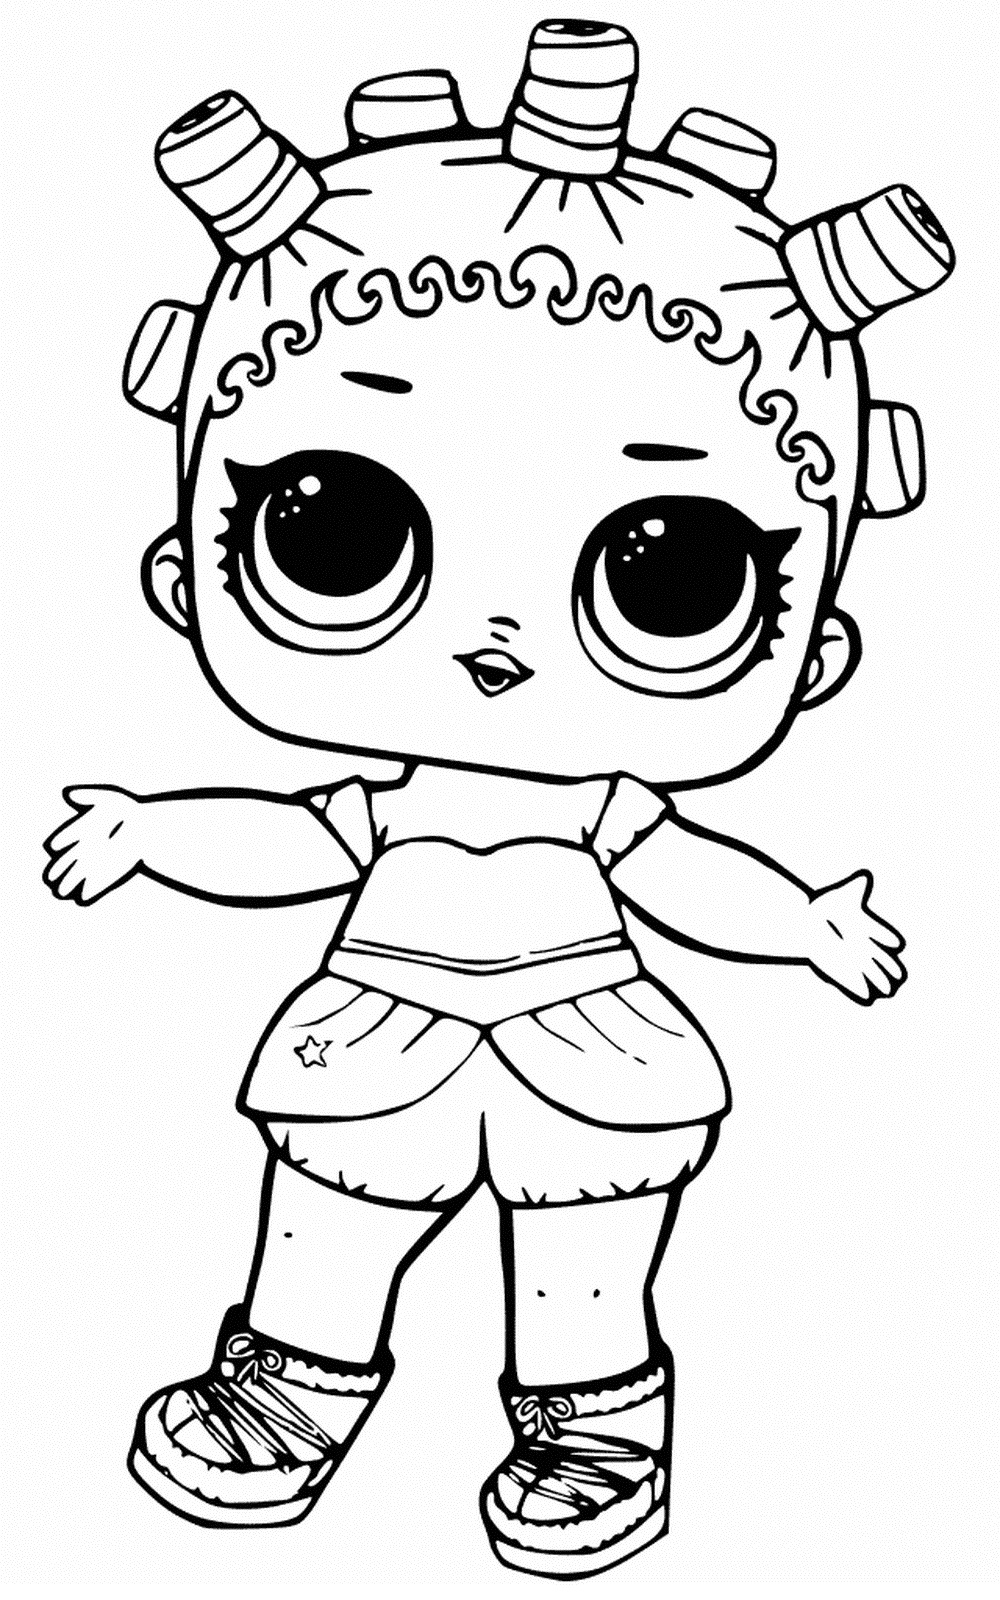 boy printable lol coloring pages lol surprise dolls coloring pages print in a4 format lol pages coloring printable boy